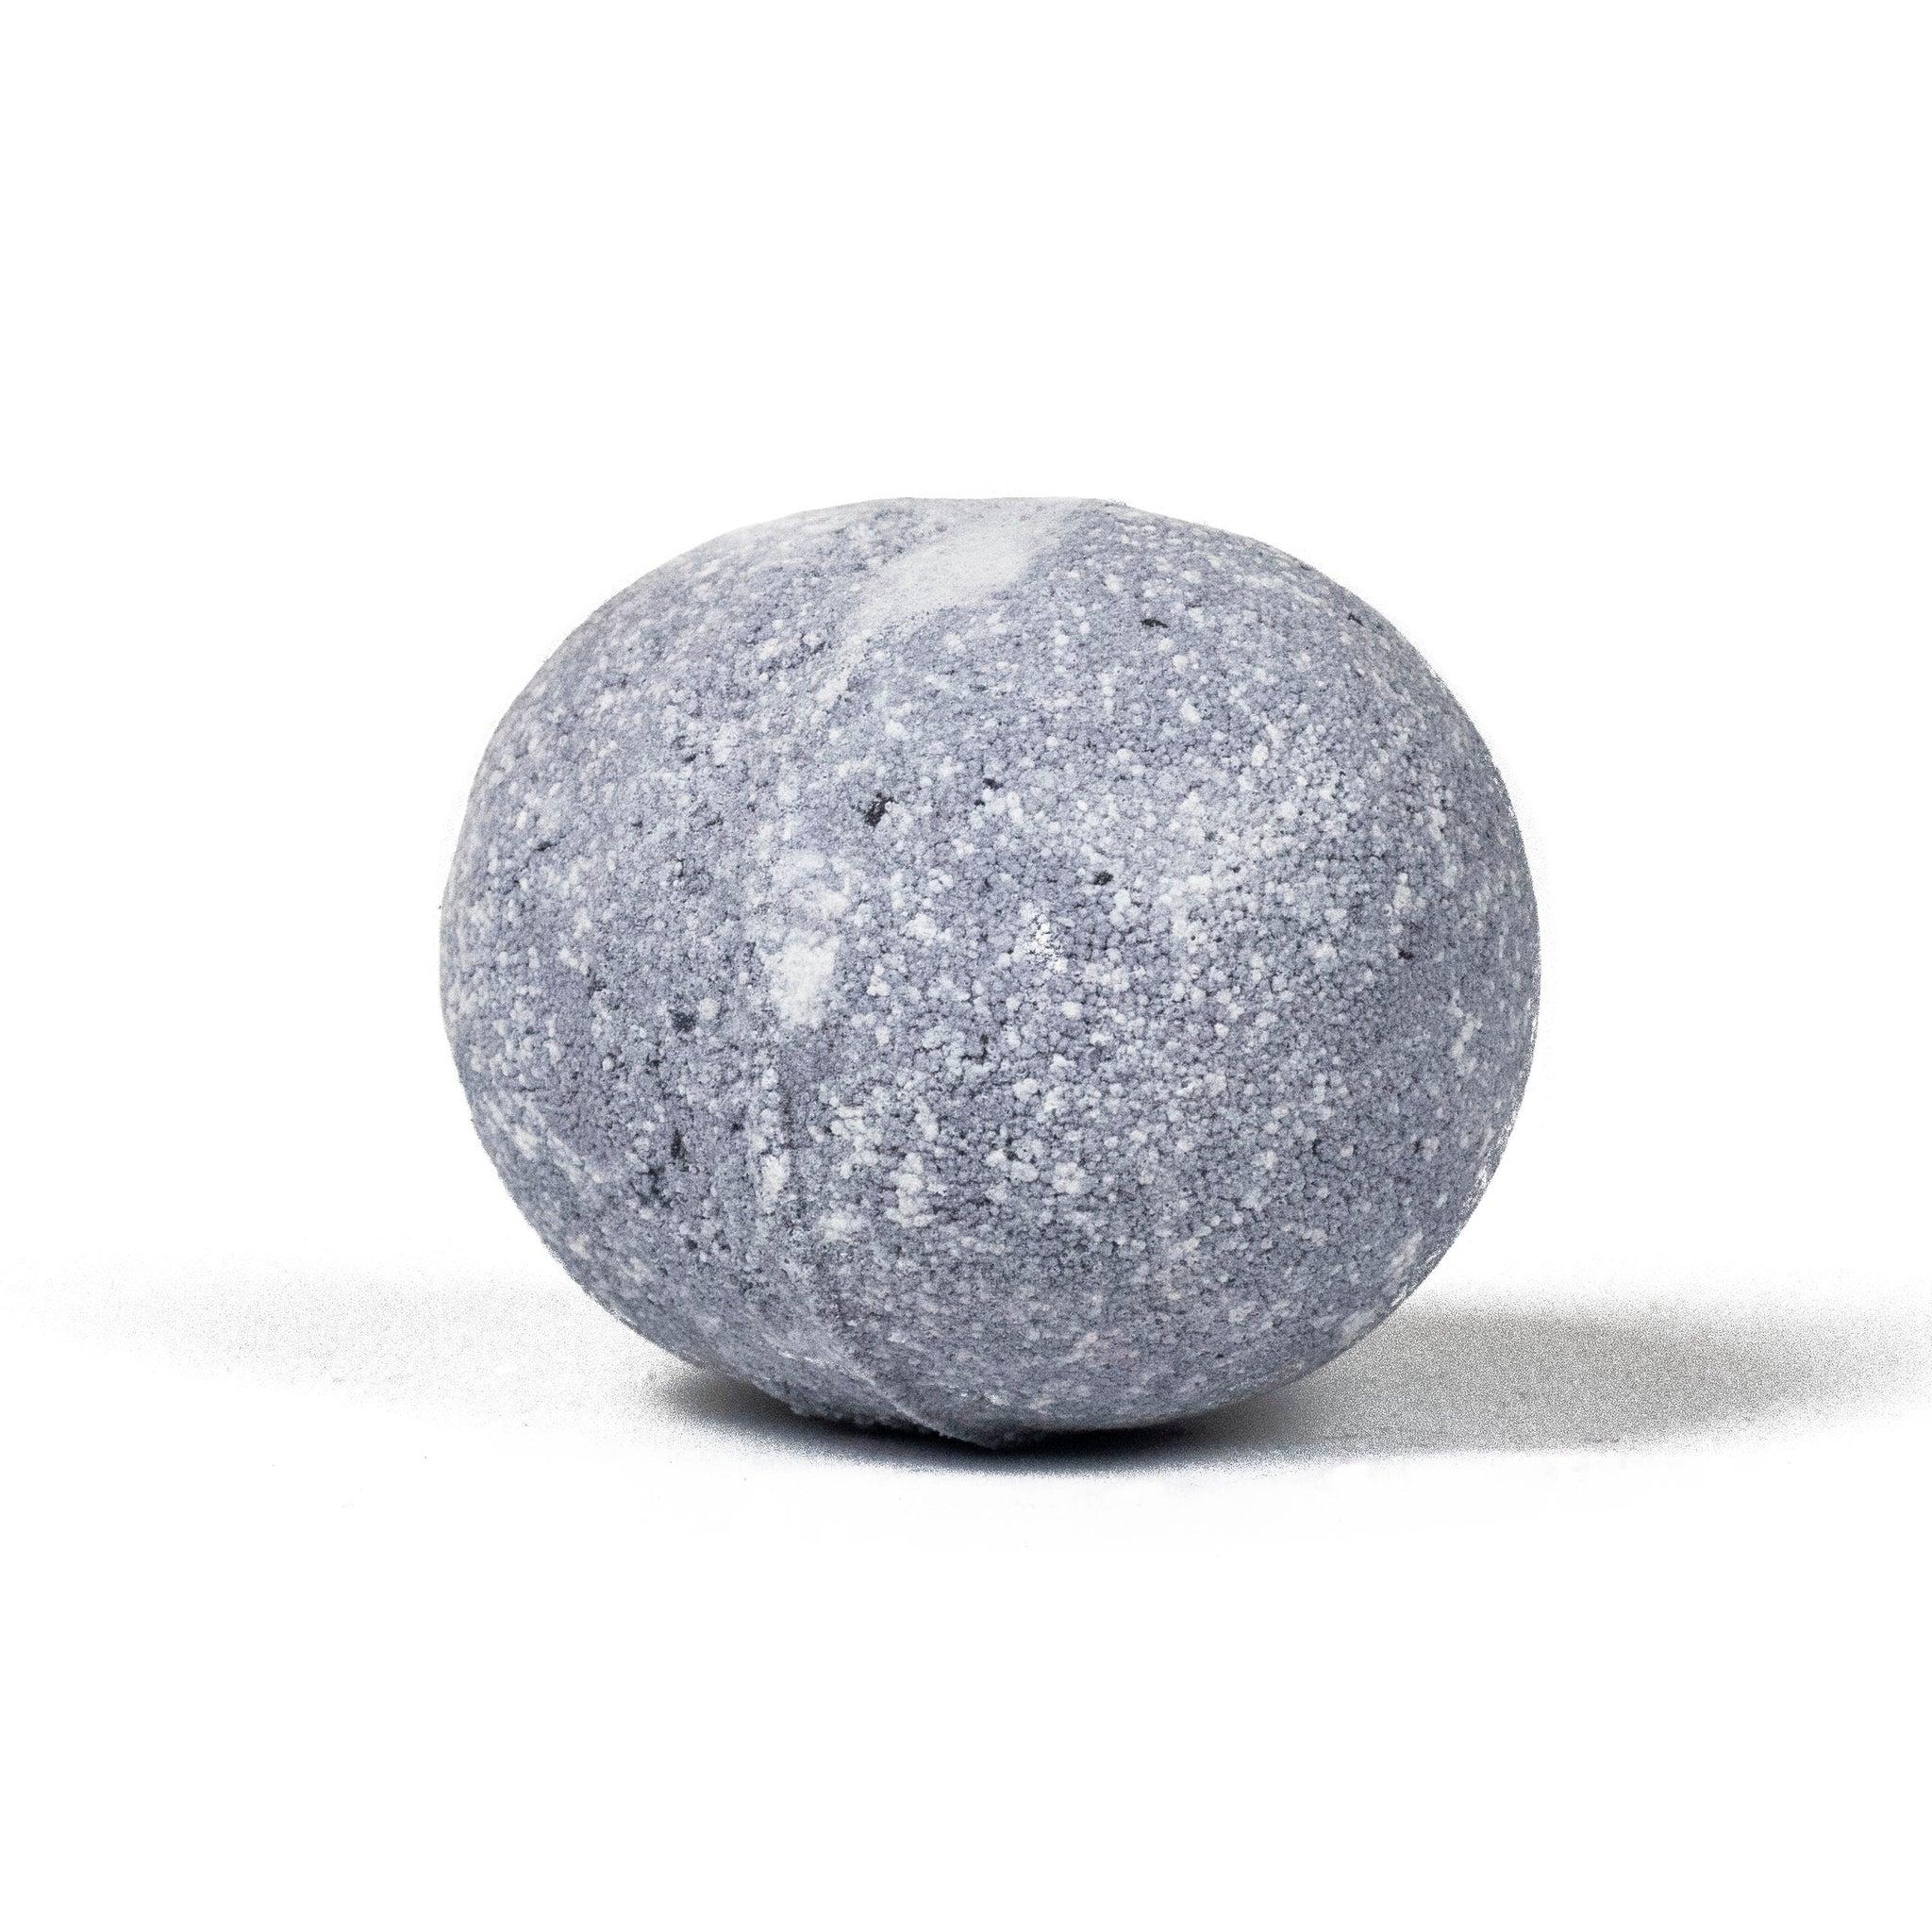 Crede For Him (Billionaire) Bath Bomb